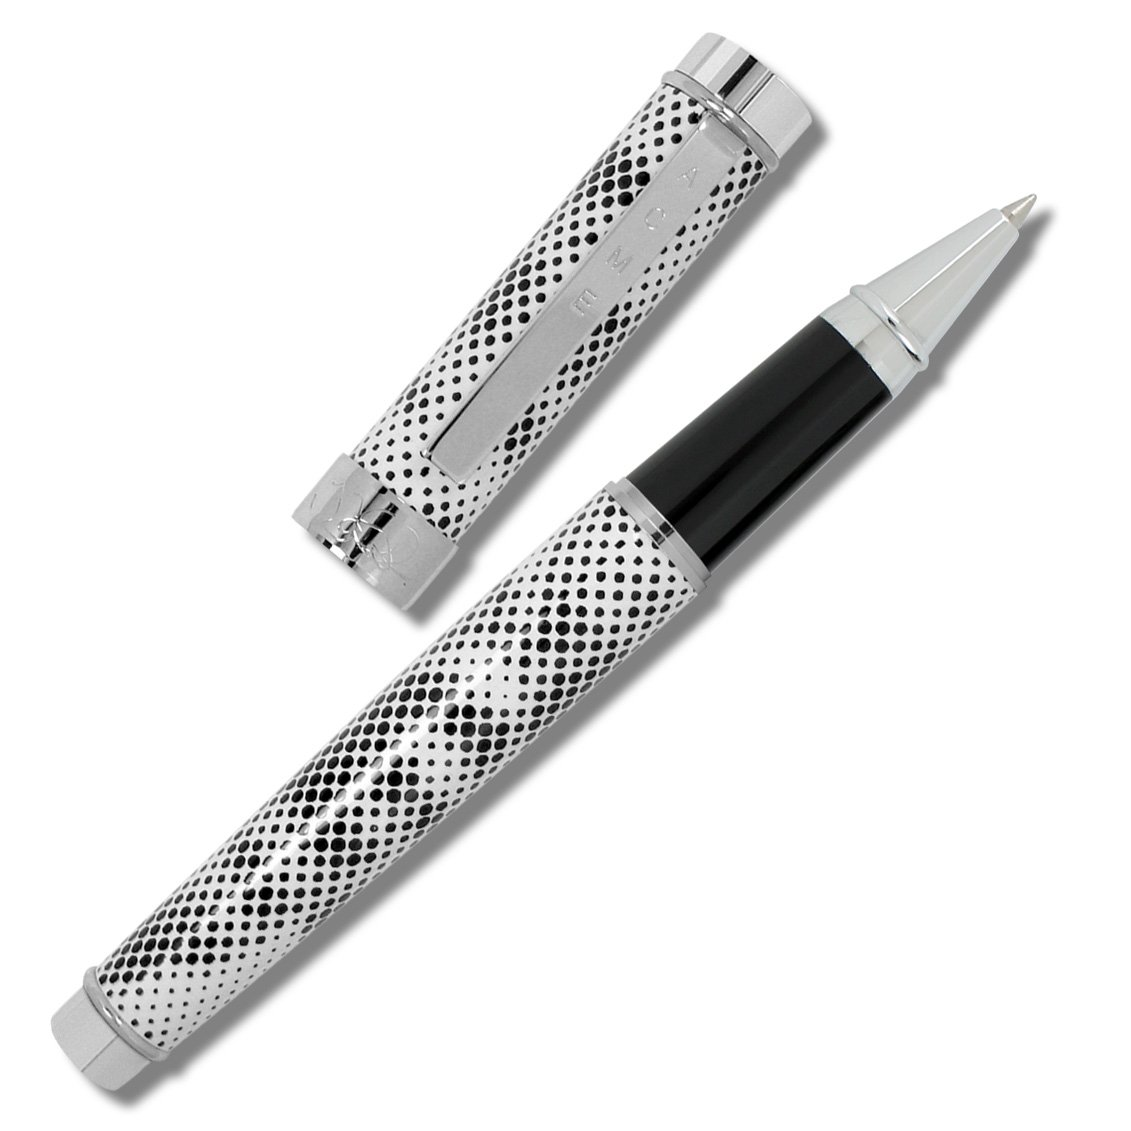 ACME Studios Halftone Roller Ball Pen by Todd Falkowsky (PTF01R) by ACME Studios Inc (Image #2)